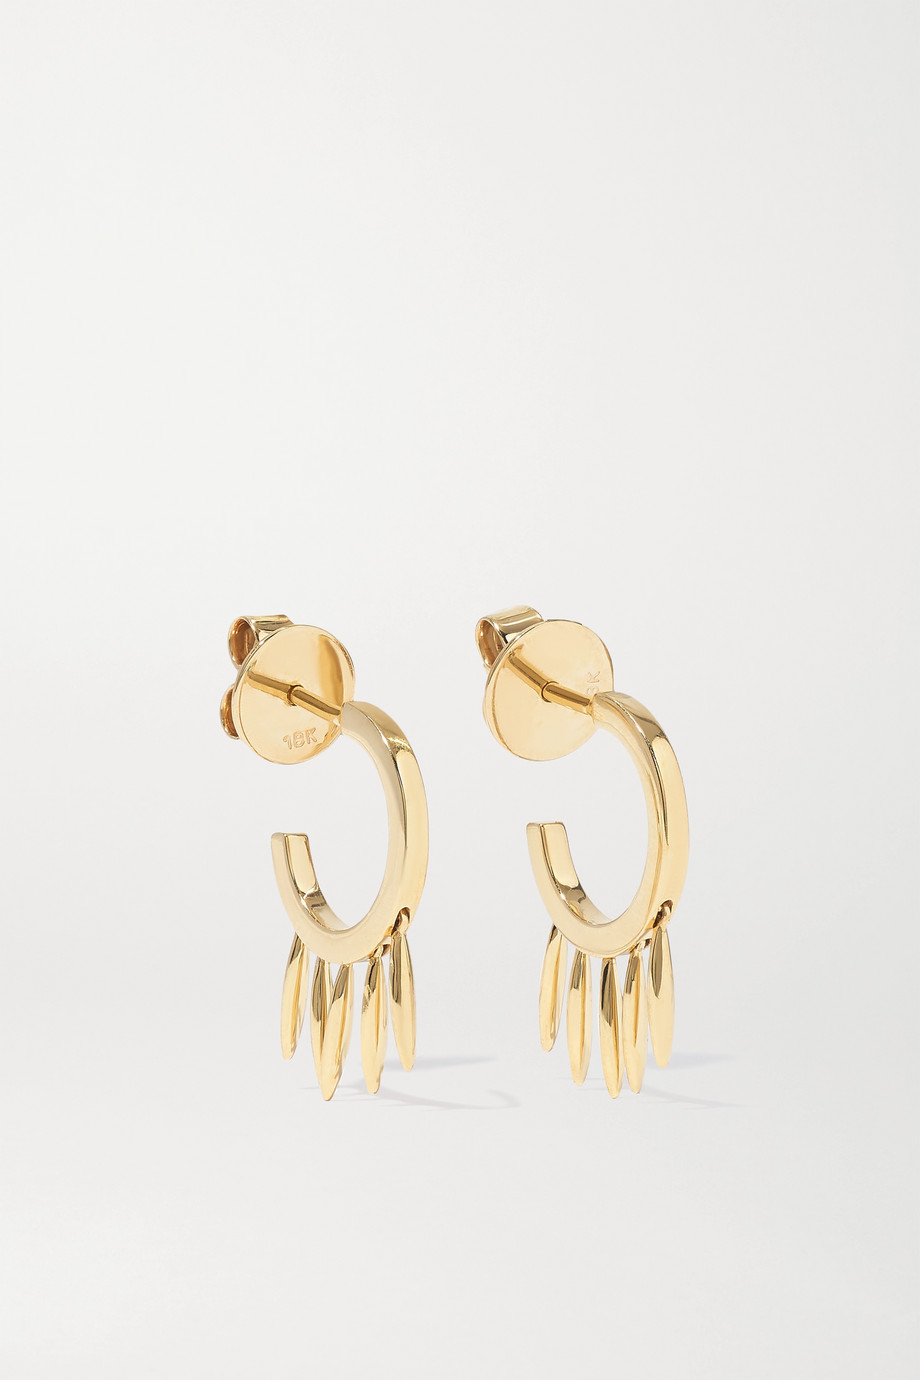 Ileana Makri Grass Clipping 18-karat gold hoop earrings